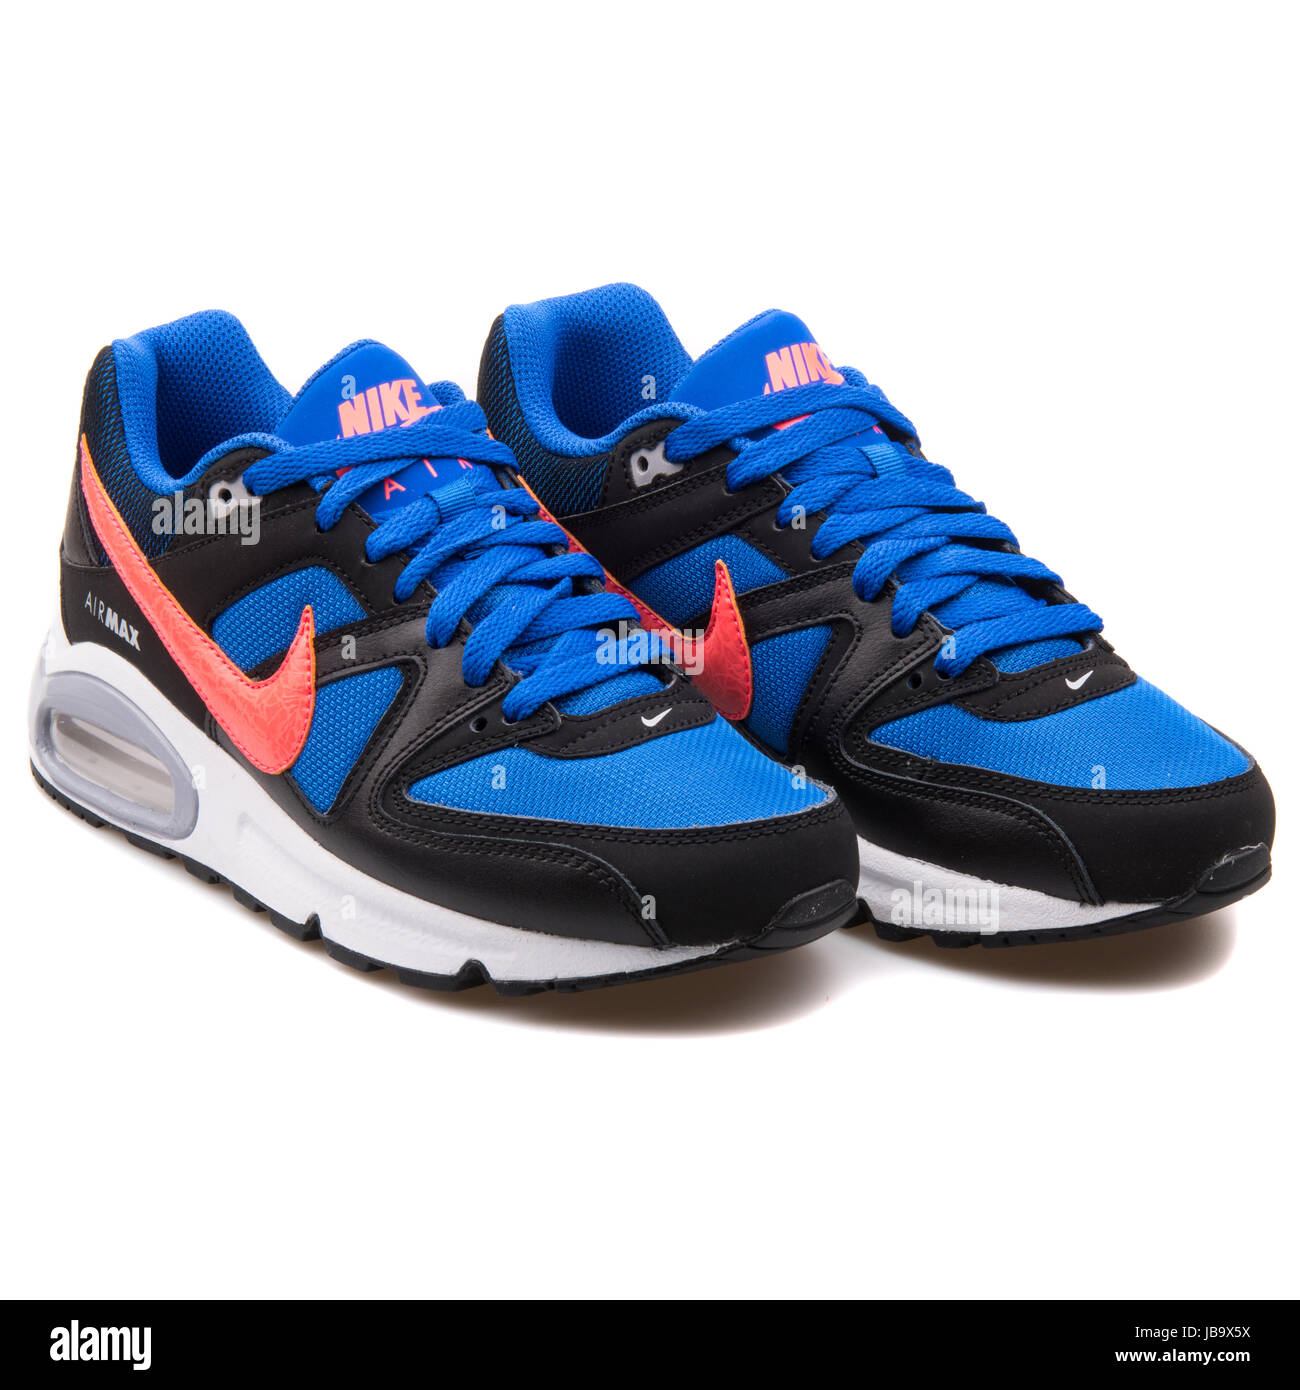 Nike Air Max Command (GS) Blue, Black and Red Youth's Running Shoes - 407759-480 - Stock Image